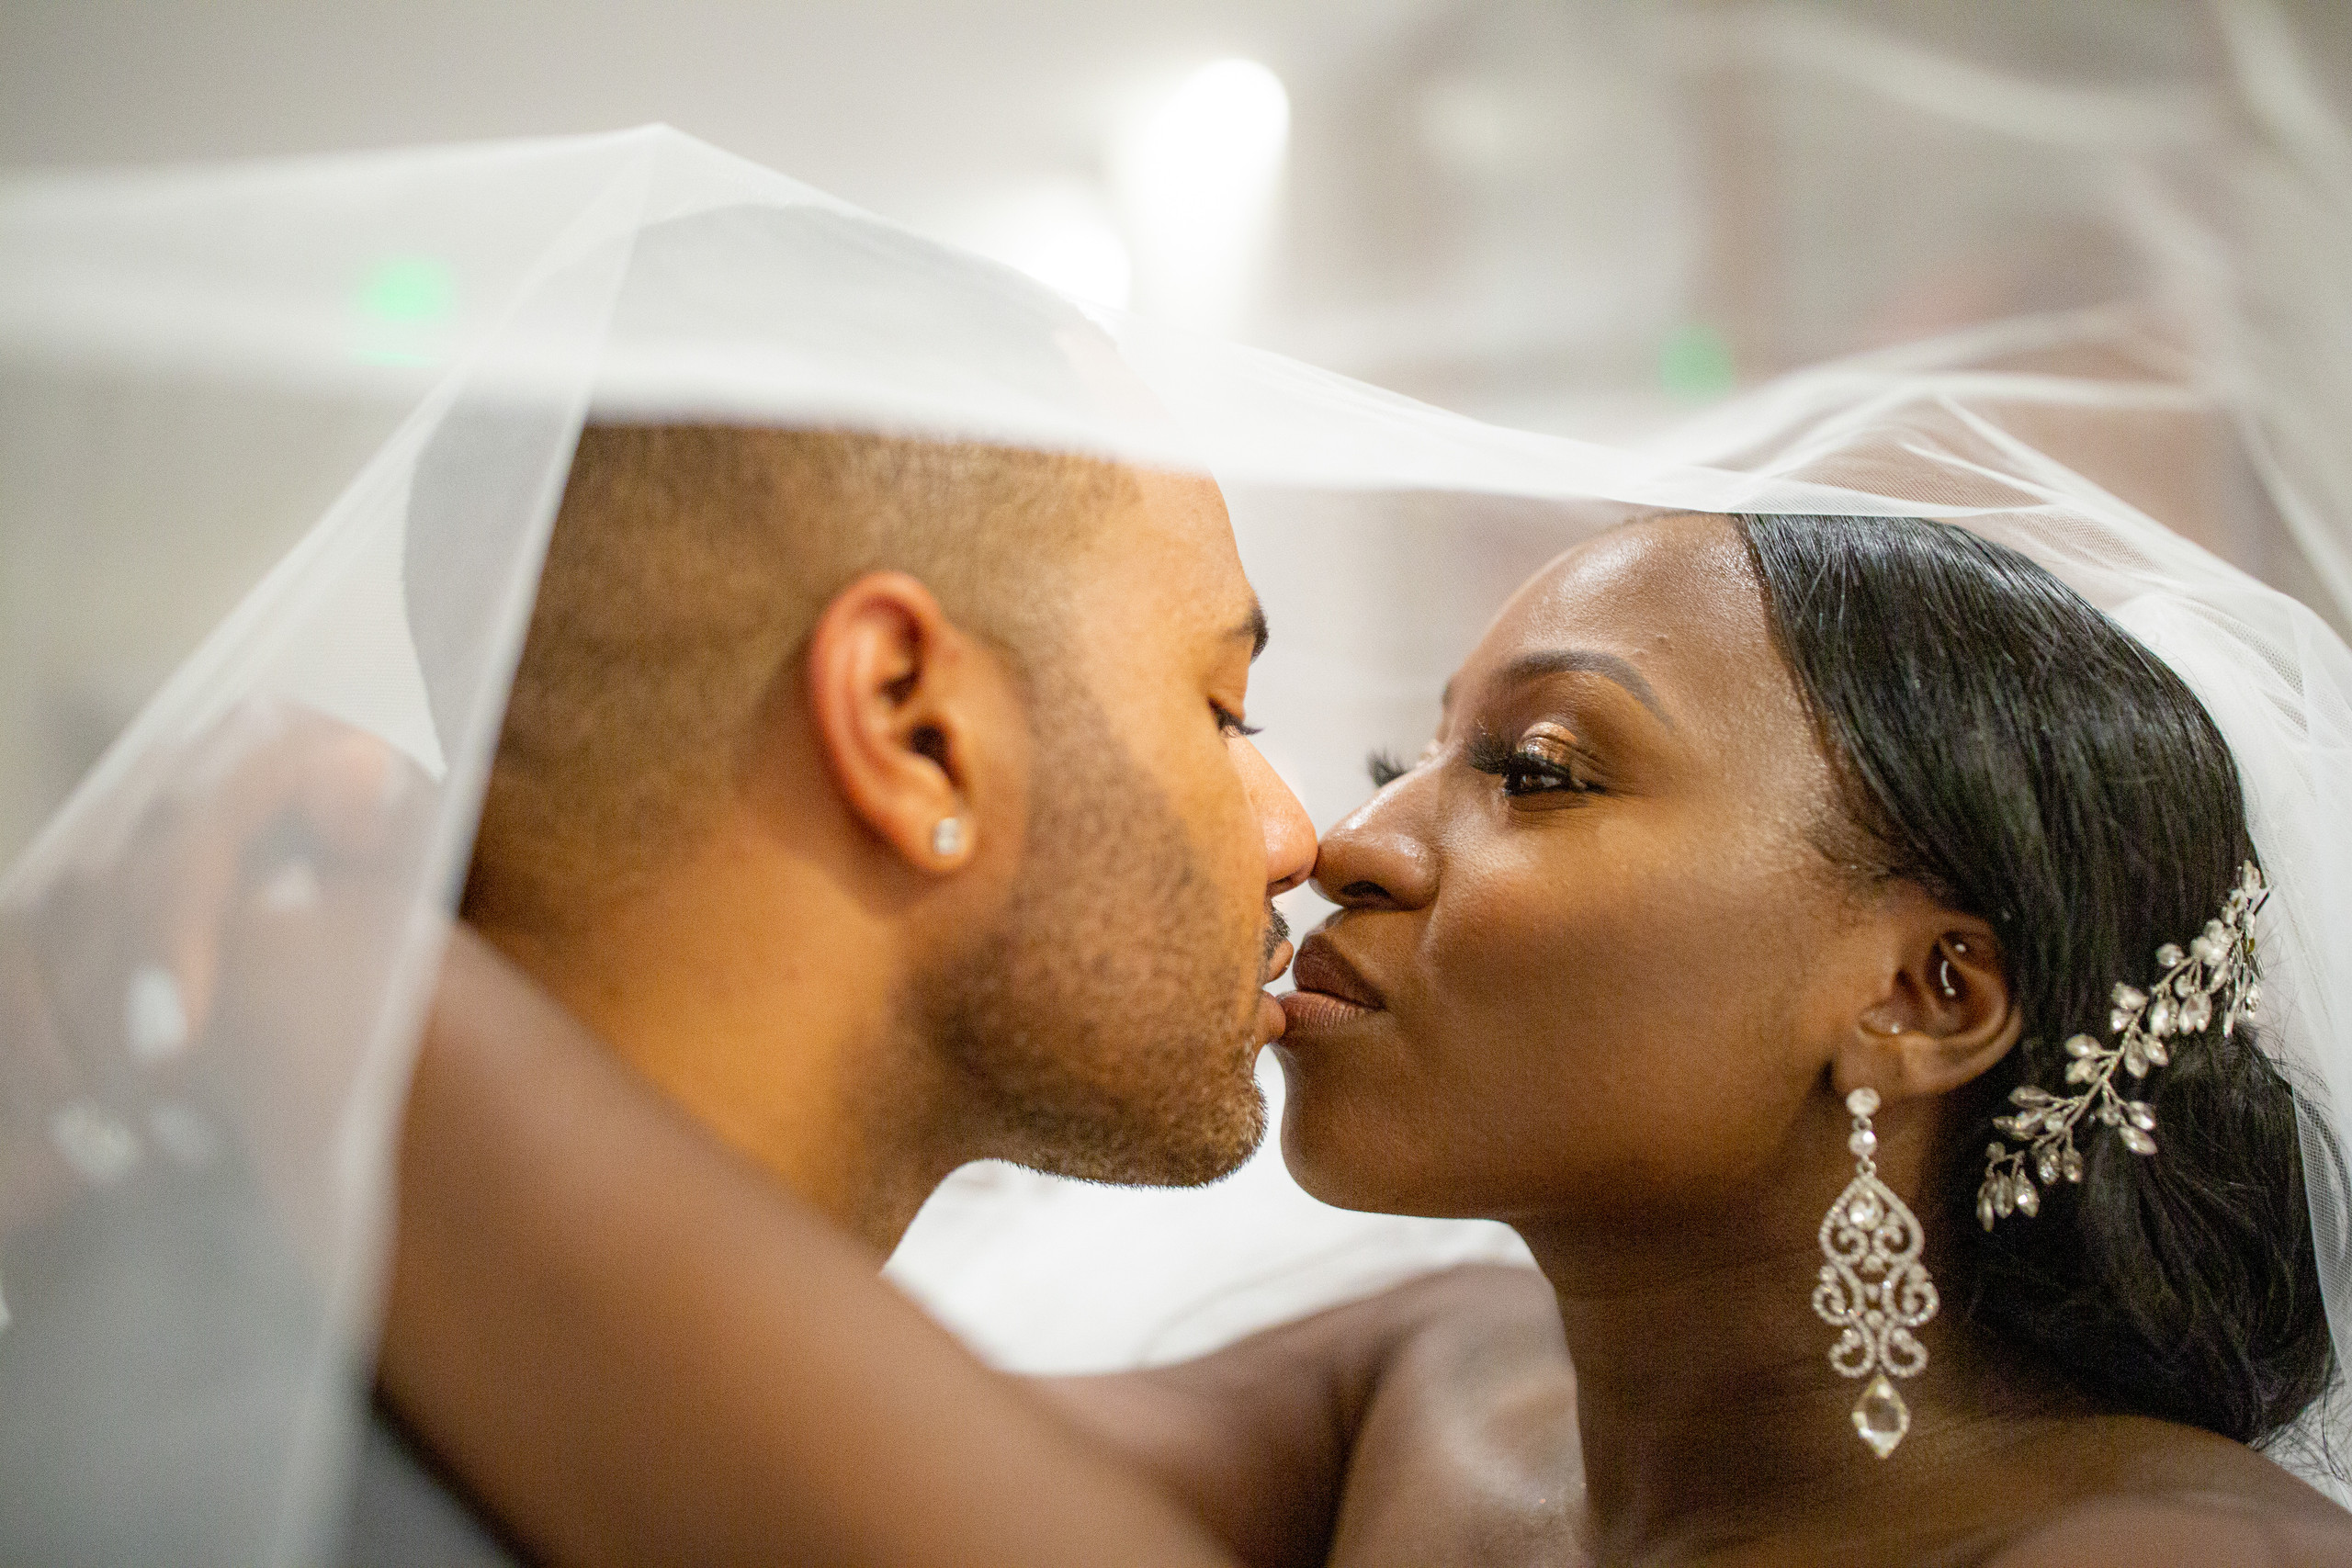 The bride and groom share an intimate moment under the bride's veil during the wedding reception at the Hilton Main in Norfolk, Virginia.